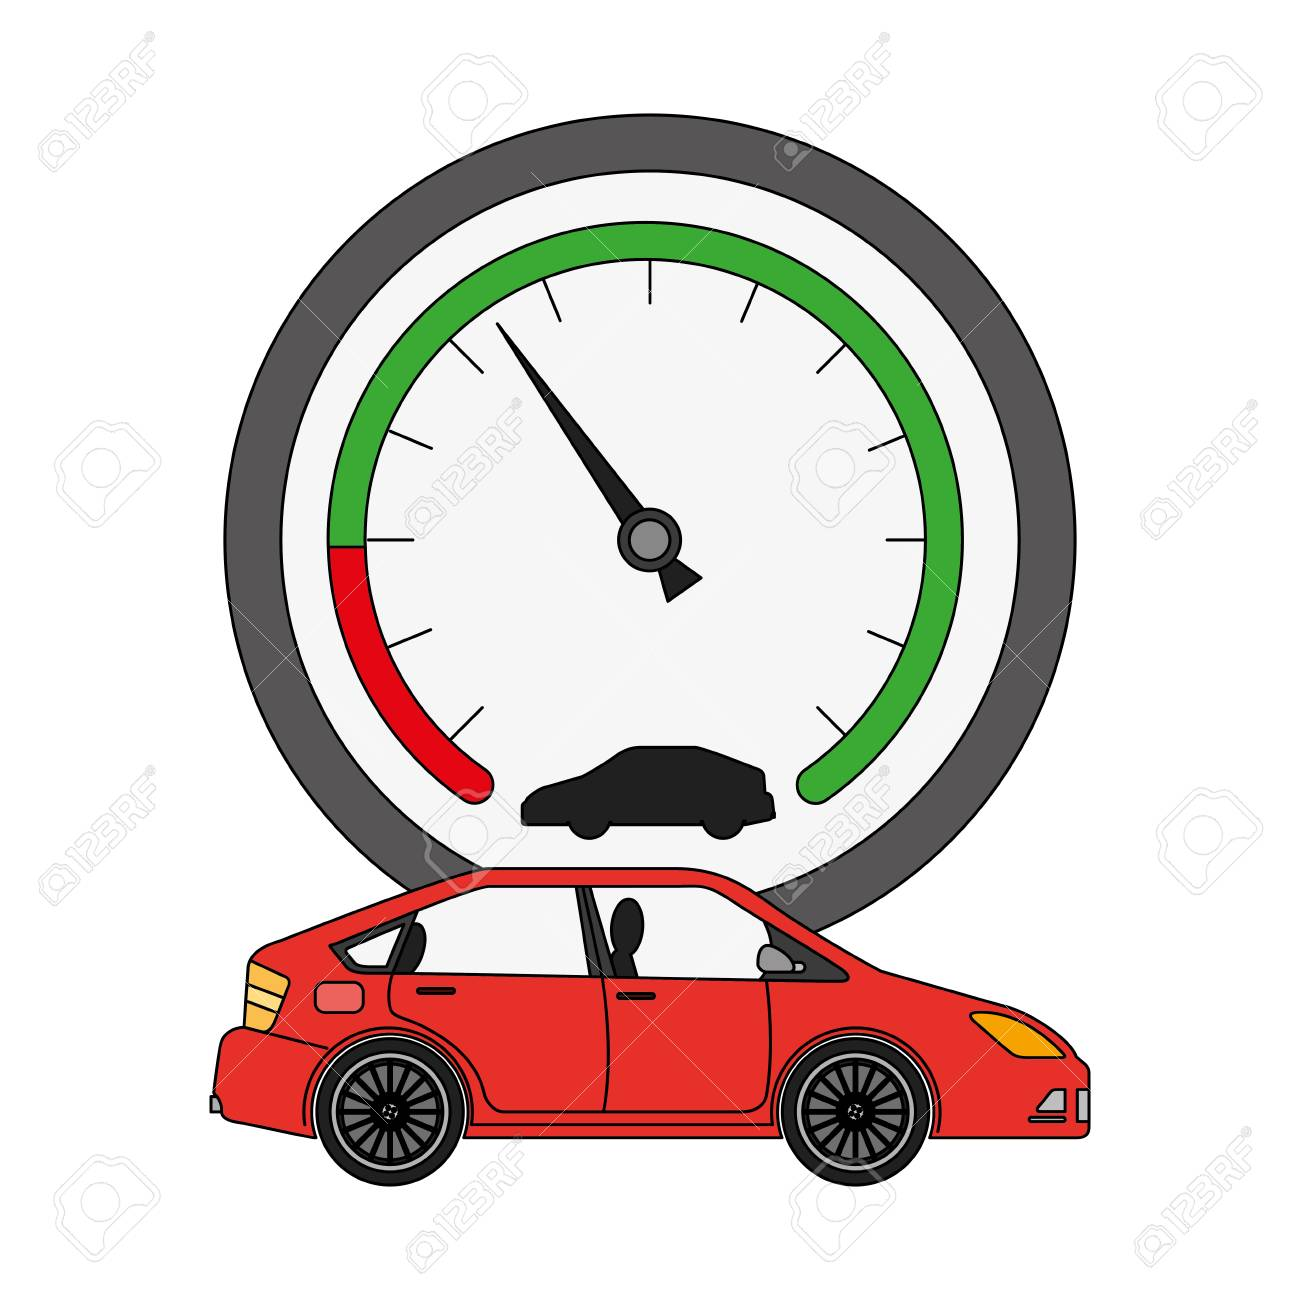 speed gauge with car isolated icon vector illustration design - 106217645